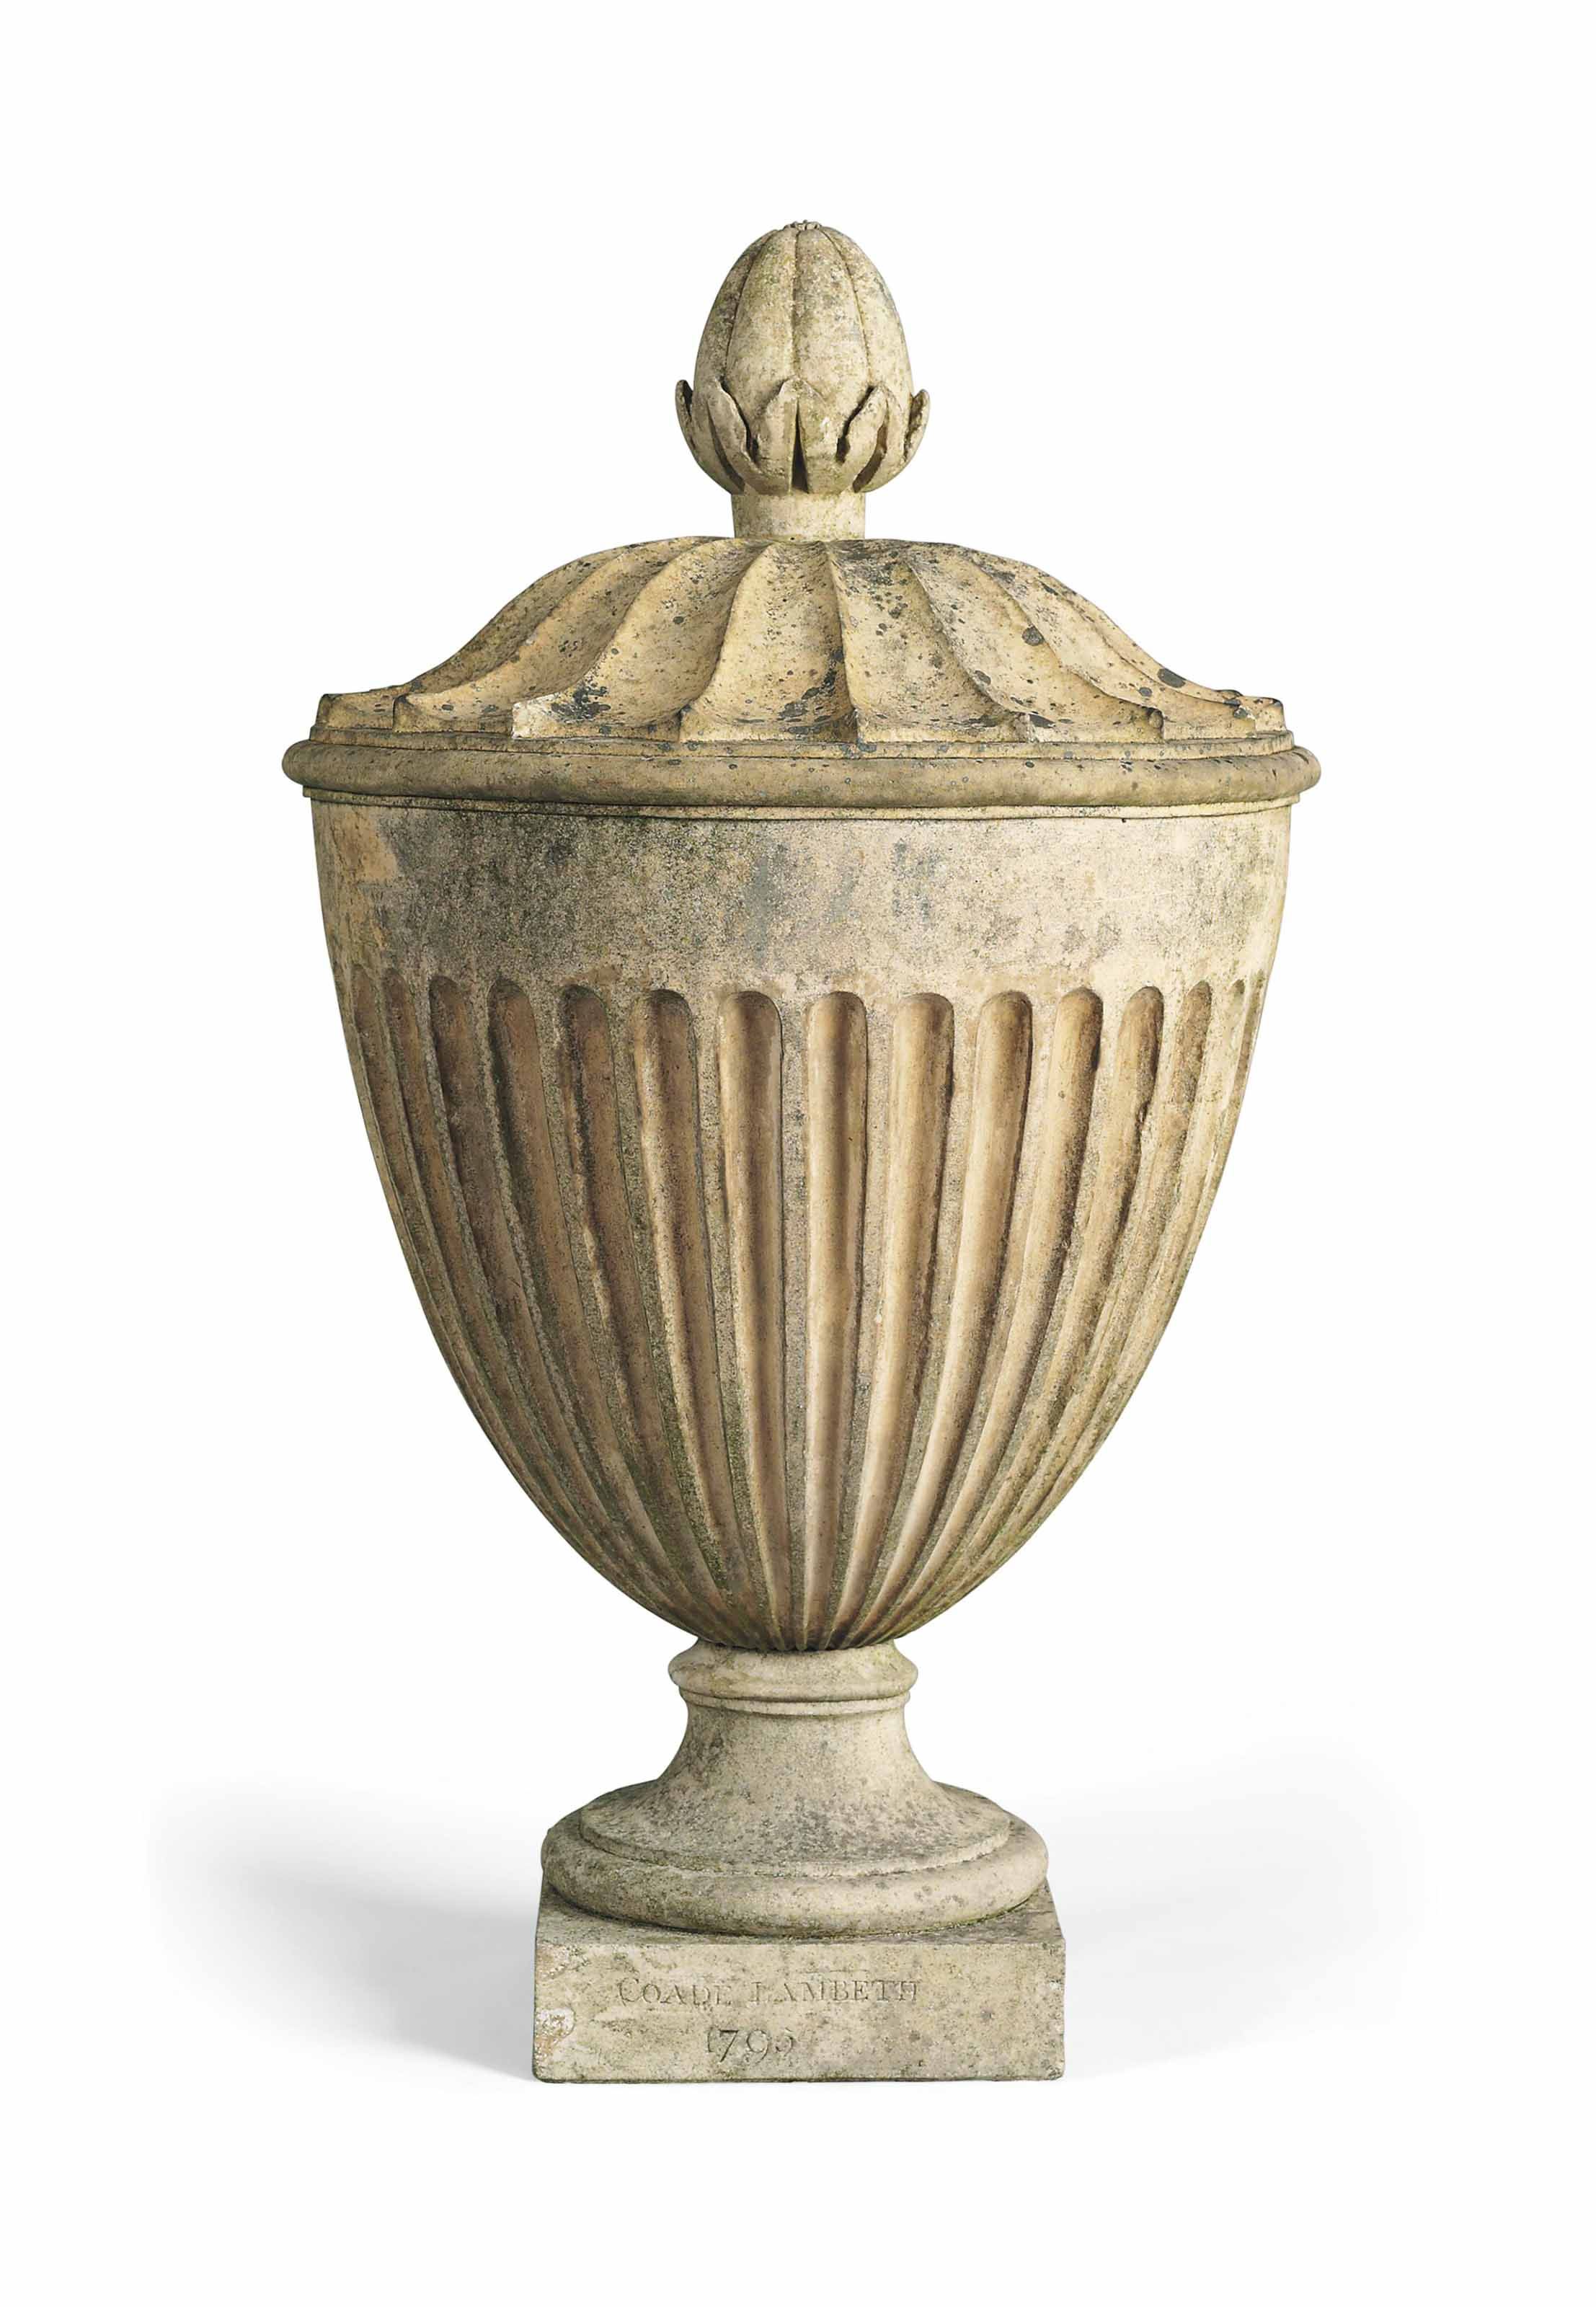 A GEORGE III ARTIFICIAL 'COADE' STONE URN FINIAL